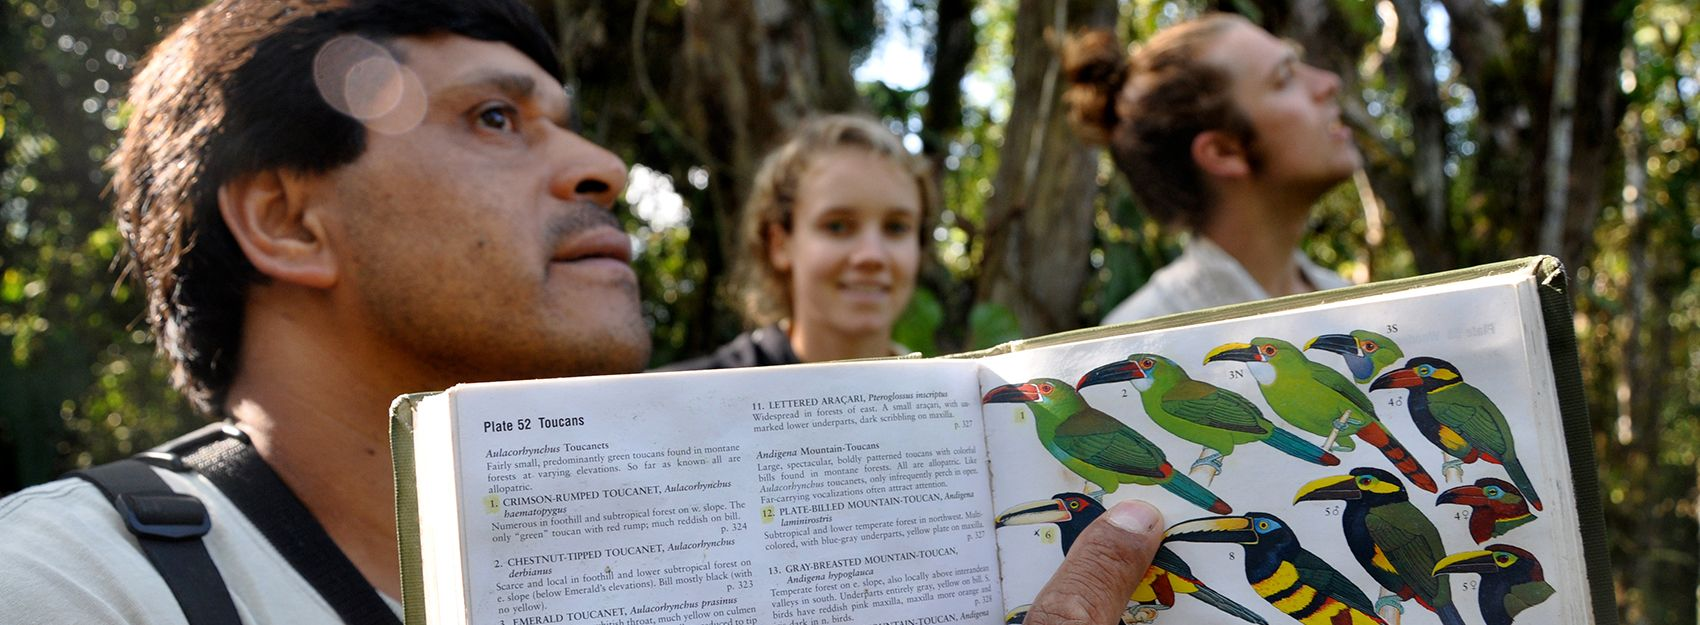 Man holding book about birds pointing at page